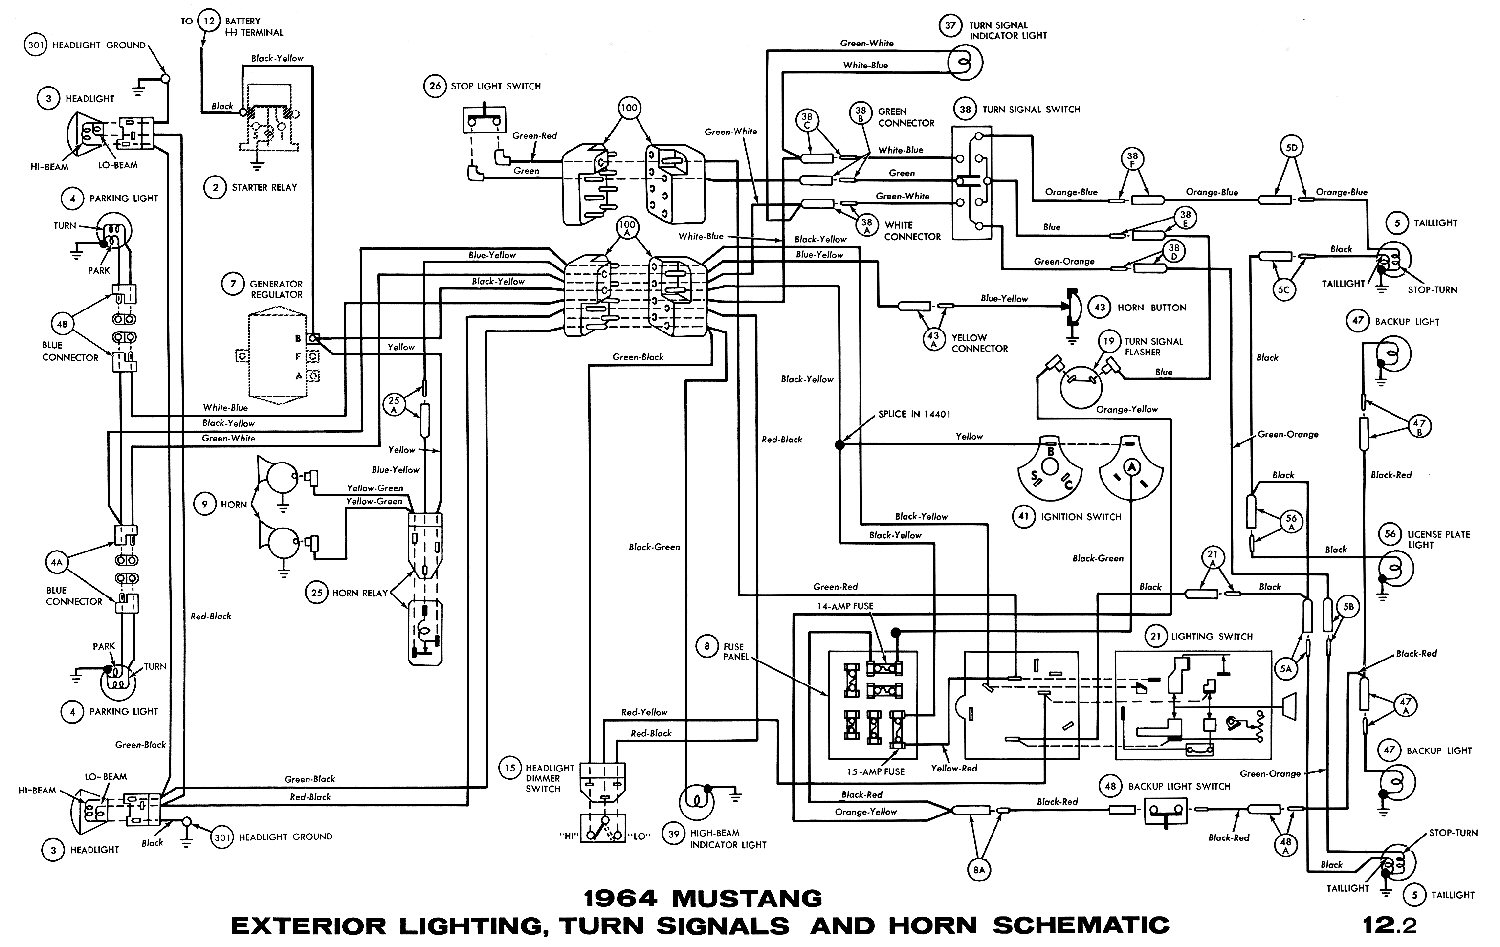 1964i 1964 mustang wiring diagrams average joe restoration ford mustang wiring diagram at gsmx.co